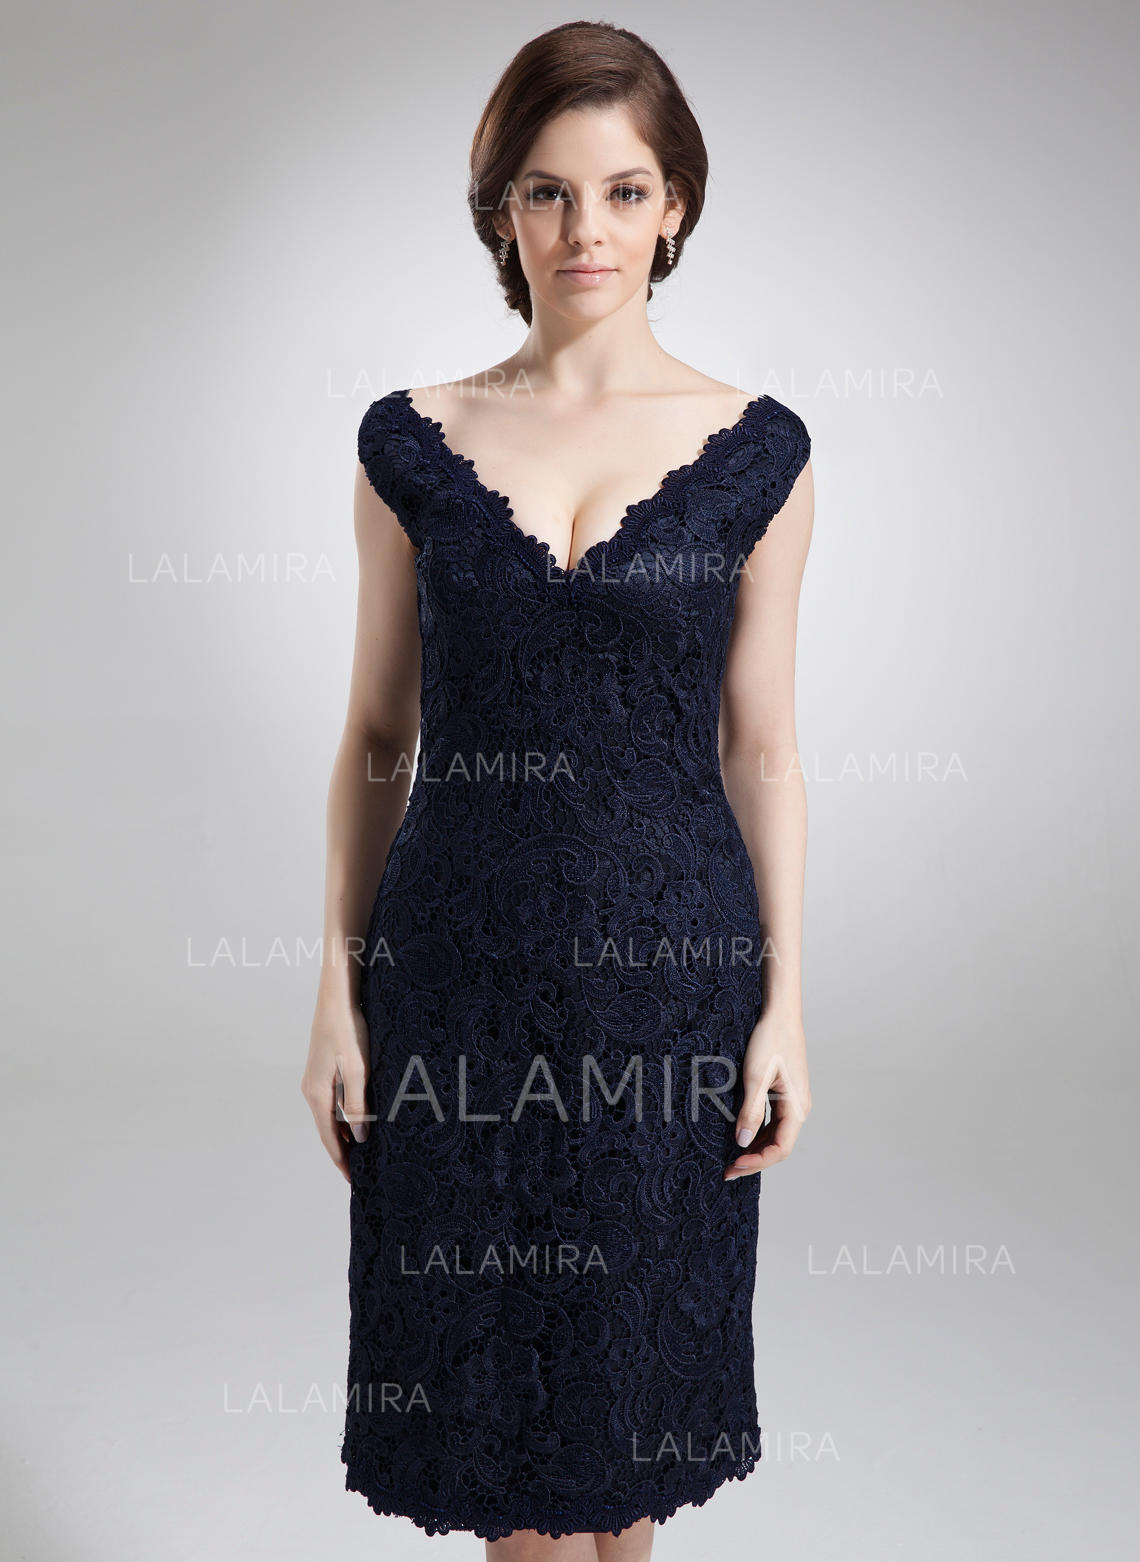 00d130b72f Sheath Column Lace Sleeveless Off-the-Shoulder Knee-Length Zipper Up  Mother. Loading zoom